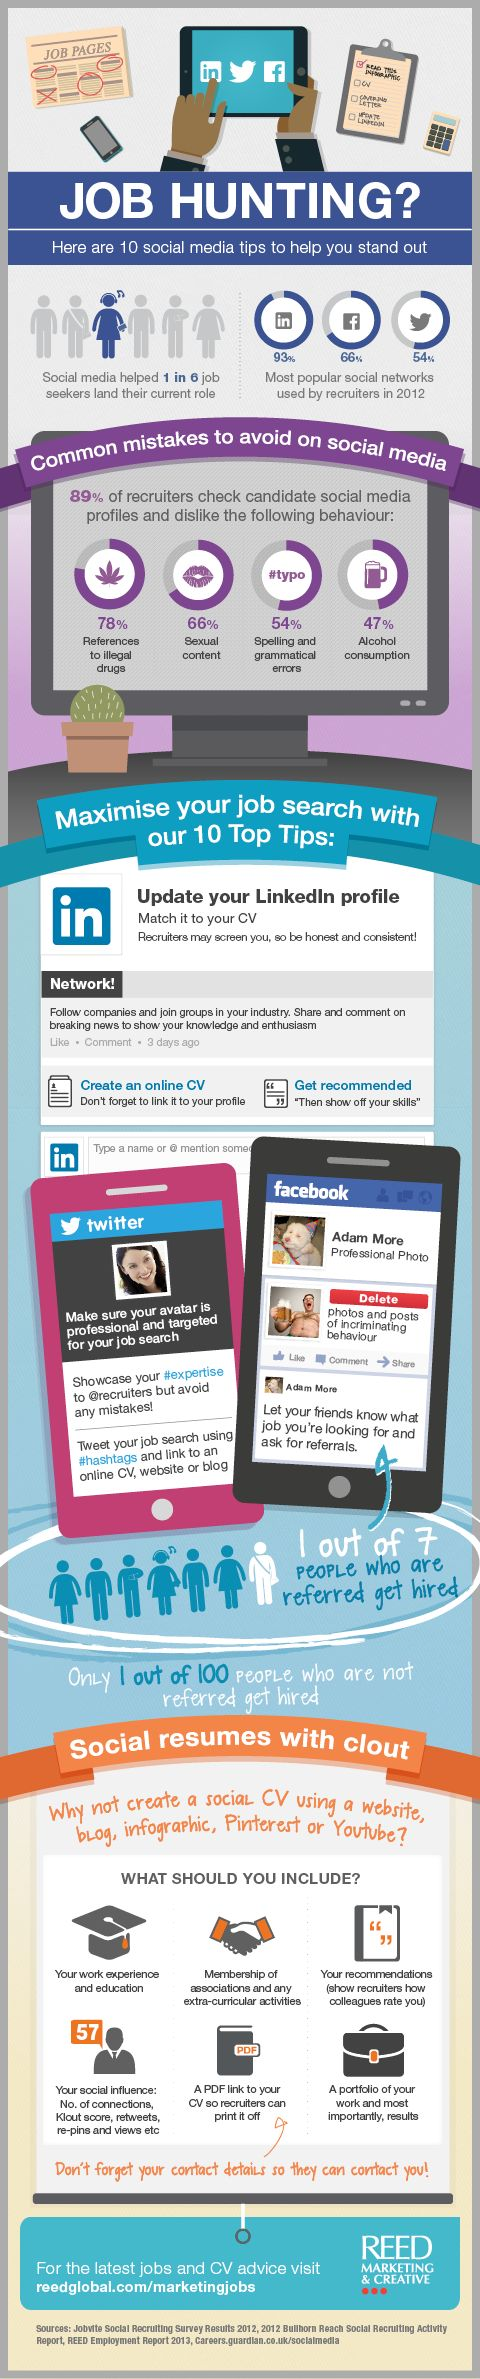 Infographic Infographic : How To Find A Job Using Social Media 10 Tips .  Image Description Infographic : How To Find A Job Using Social Media 10 Tips